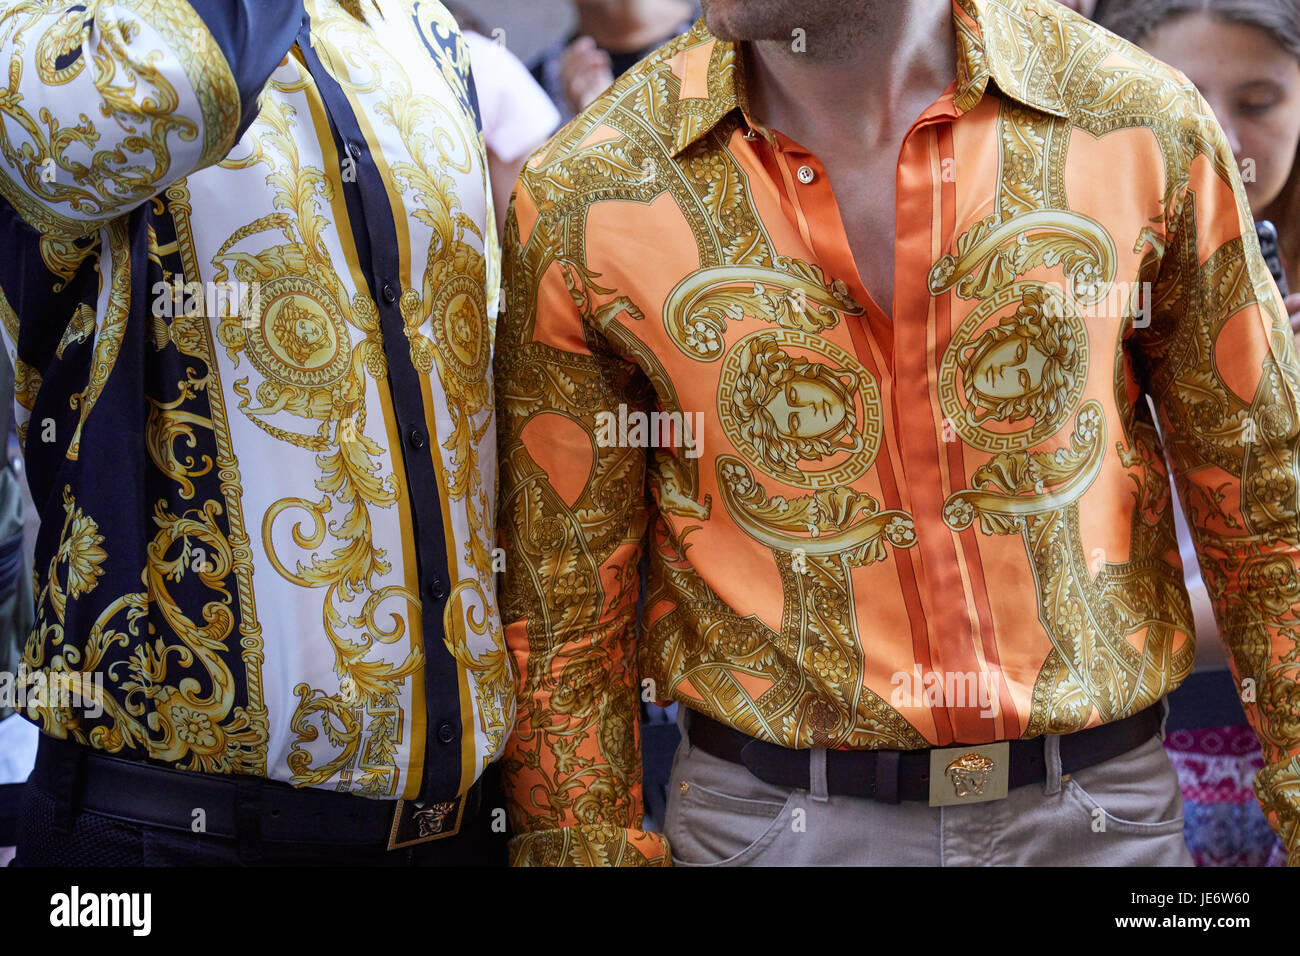 937fa2566bb2 MILAN - JUNE 17: Men with Versace decorated shirts in golden colors before Versace  fashion show, Milan Fashion Week street style on June 17, 2017 in M